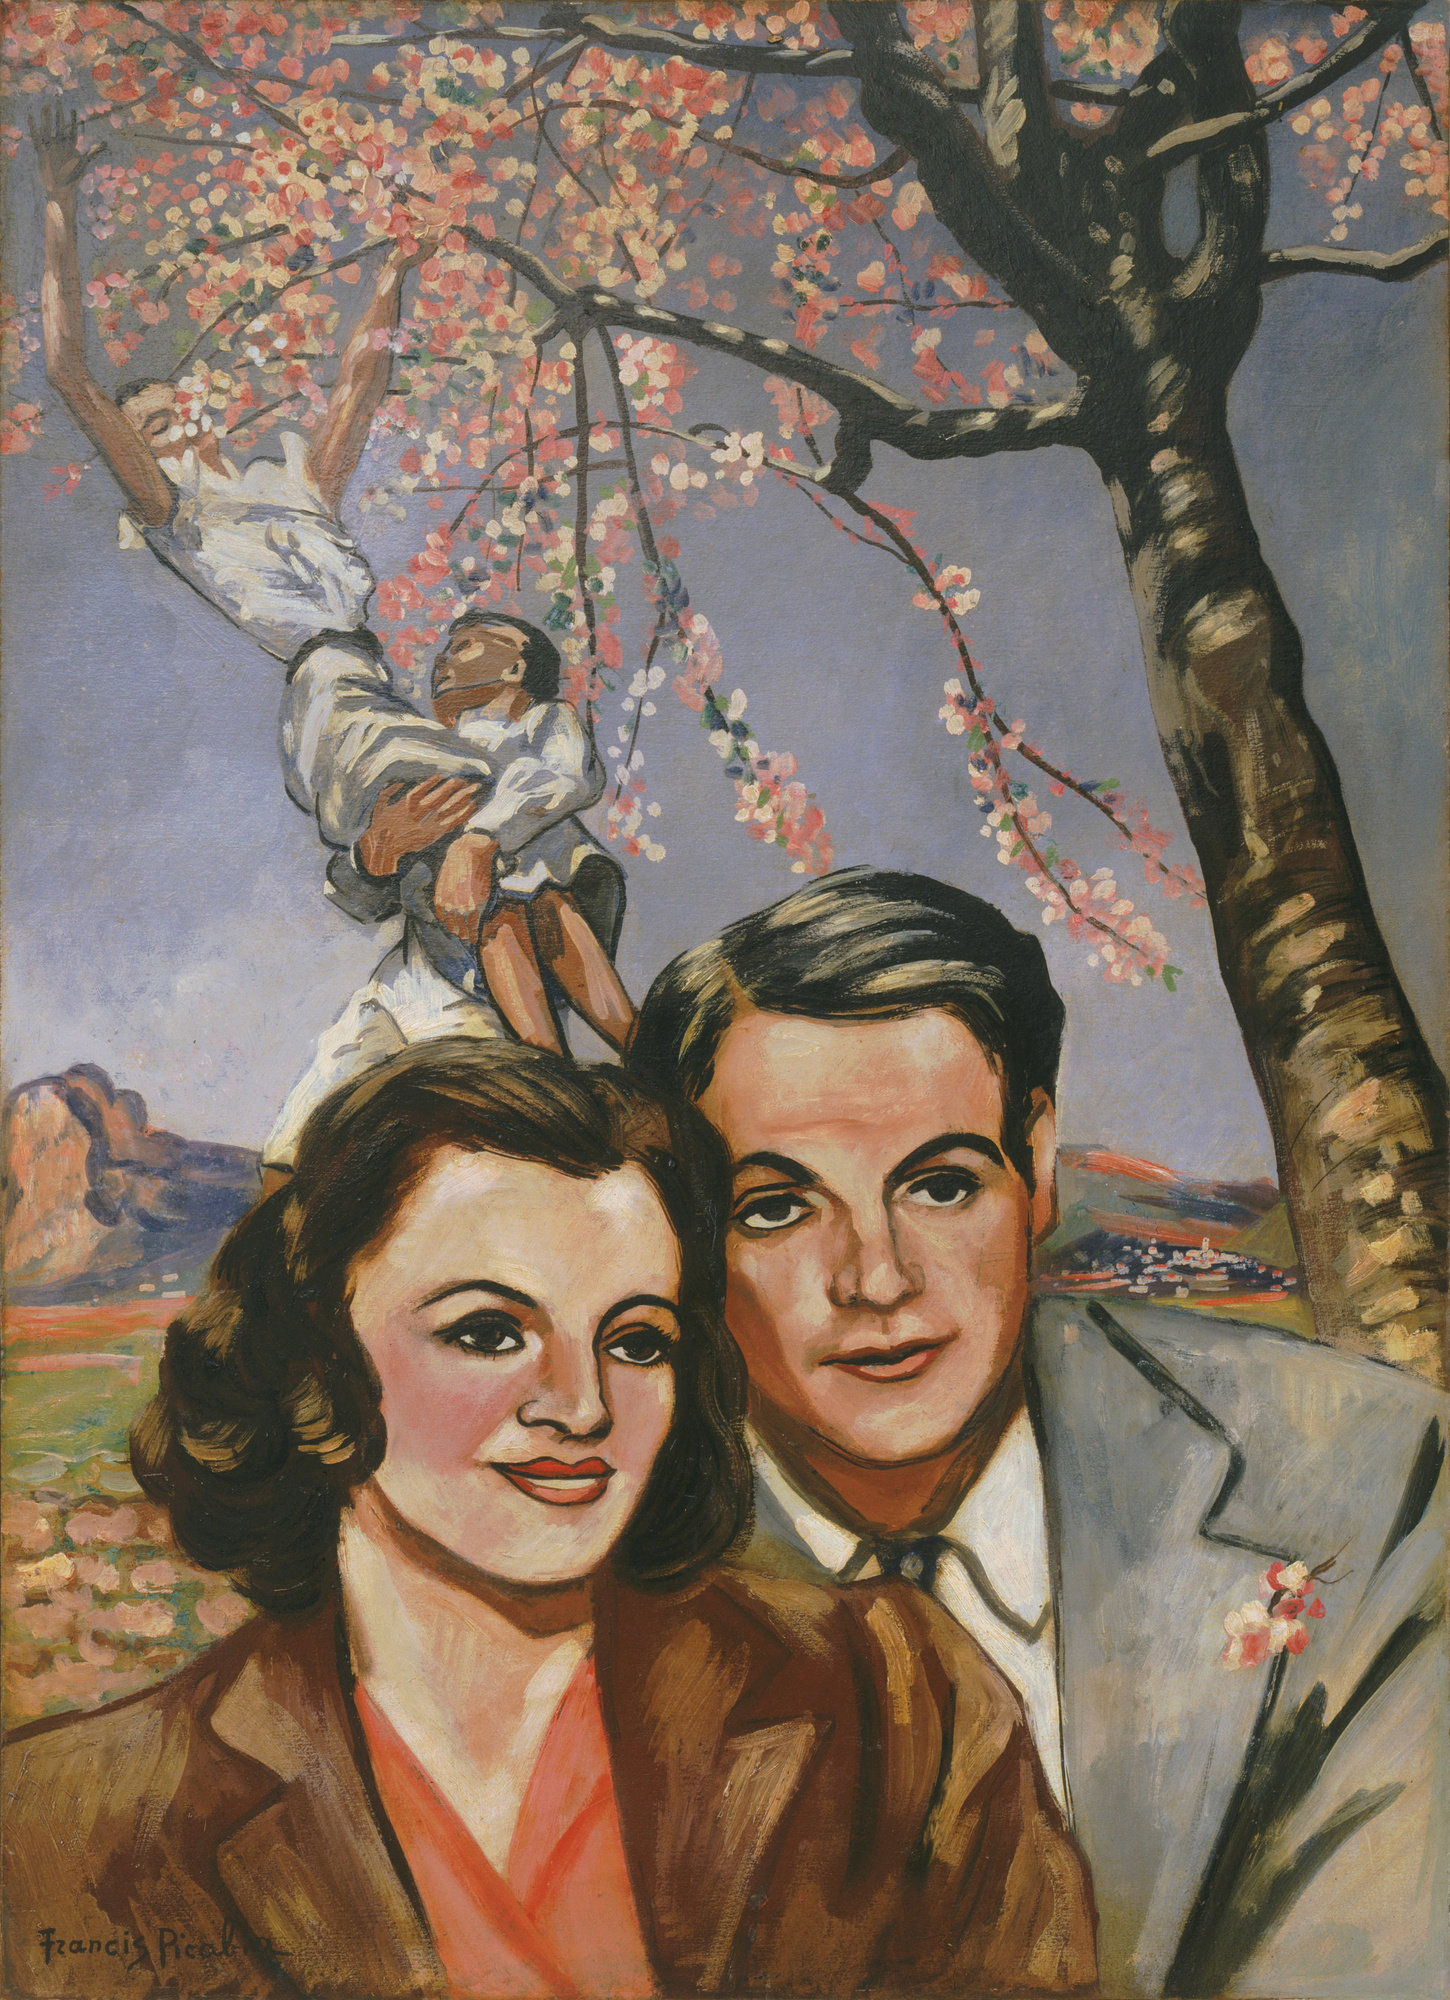 Francis Picabia, Portrait d'un couple (Portrait of a Couple), 1942–43, oil on board, 41 5/8 × 30 1/2 inches (The Museum of Modern Art, New York. Purchase, 2000. © 2016 Artist Rights Society (ARS), New York/ADAGP, Paris. Photo courtesy The Muse